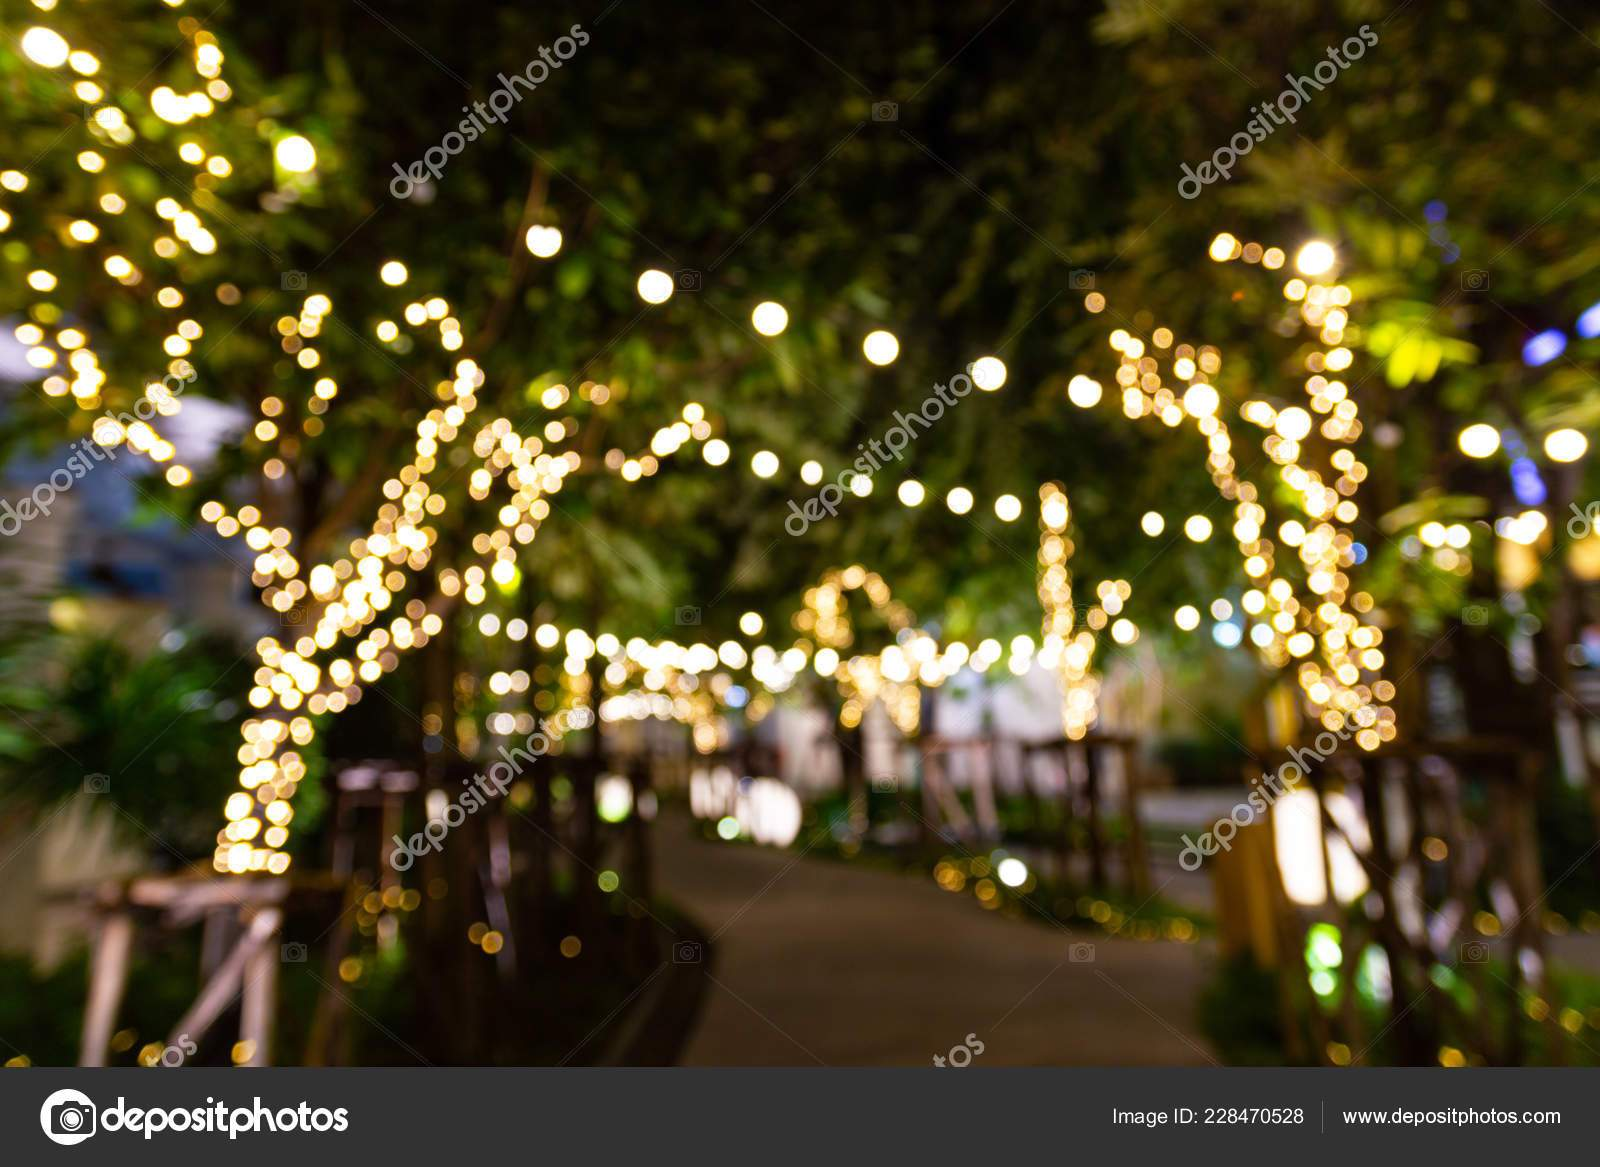 depositphotos stock photo blurred image decorative outdoor string